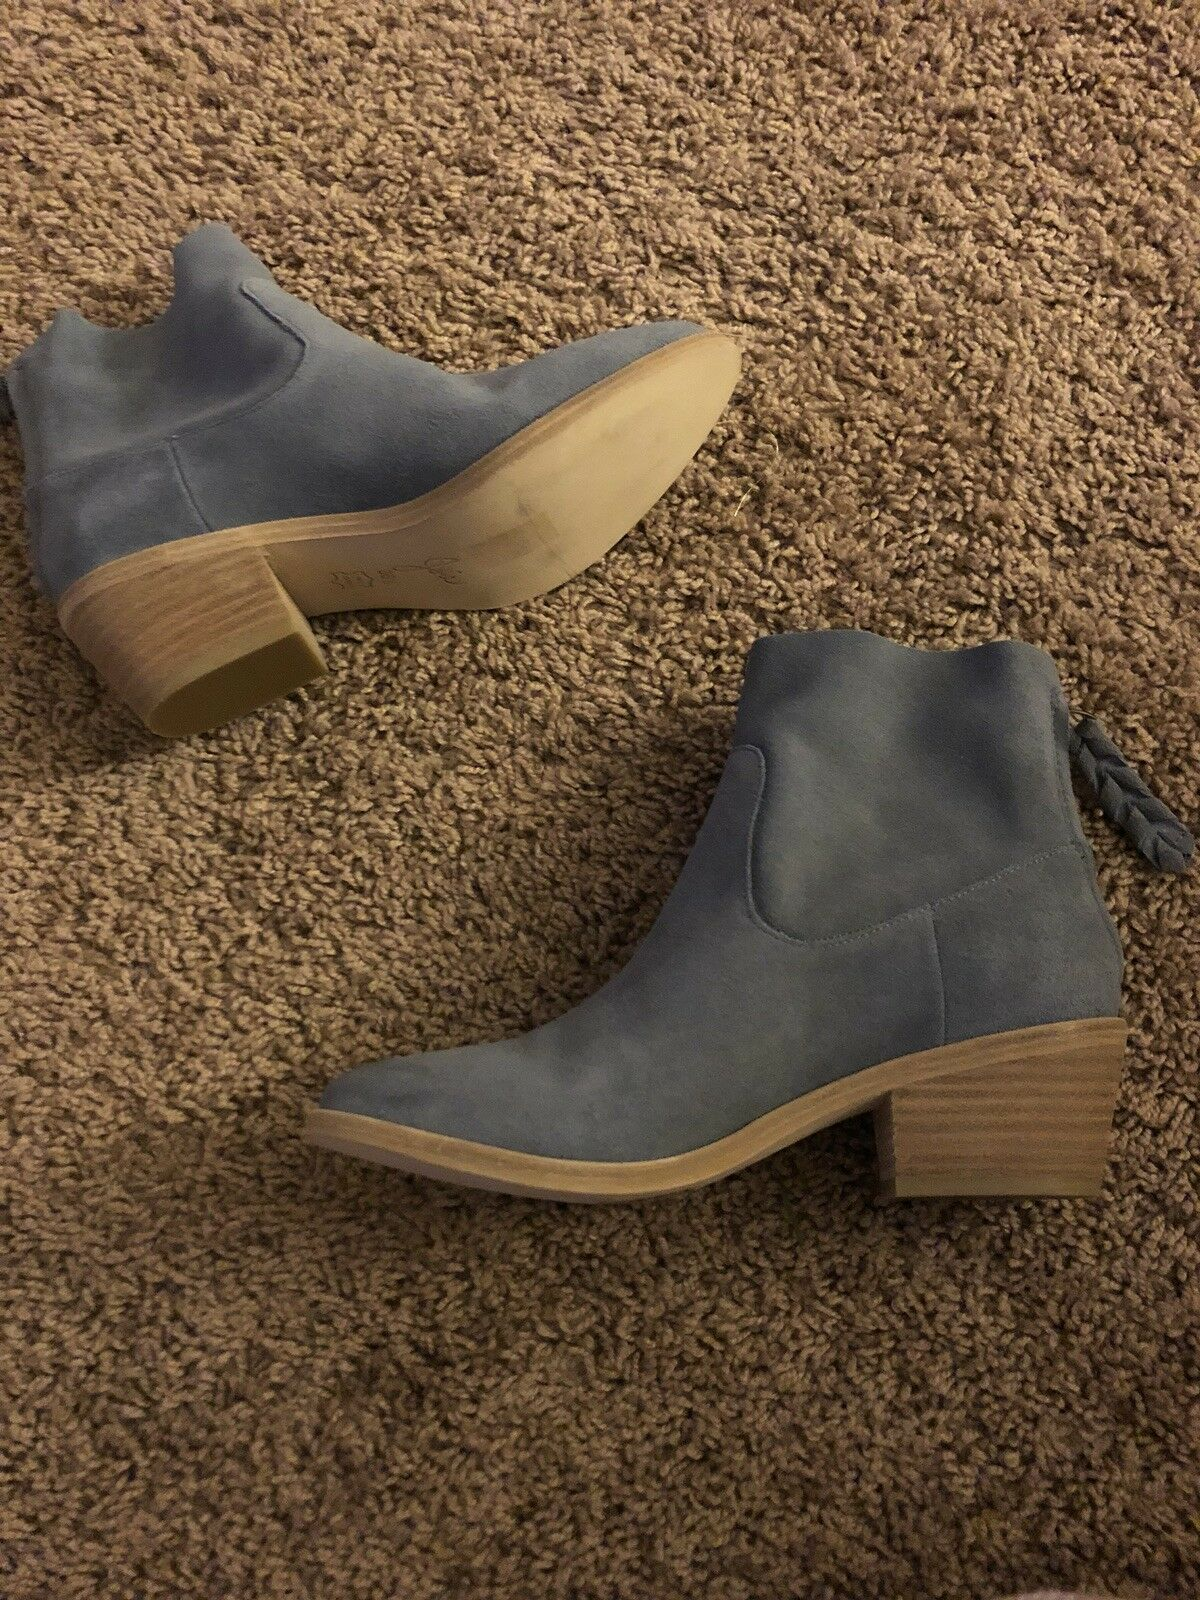 NWT Joie Booties Size 6.5